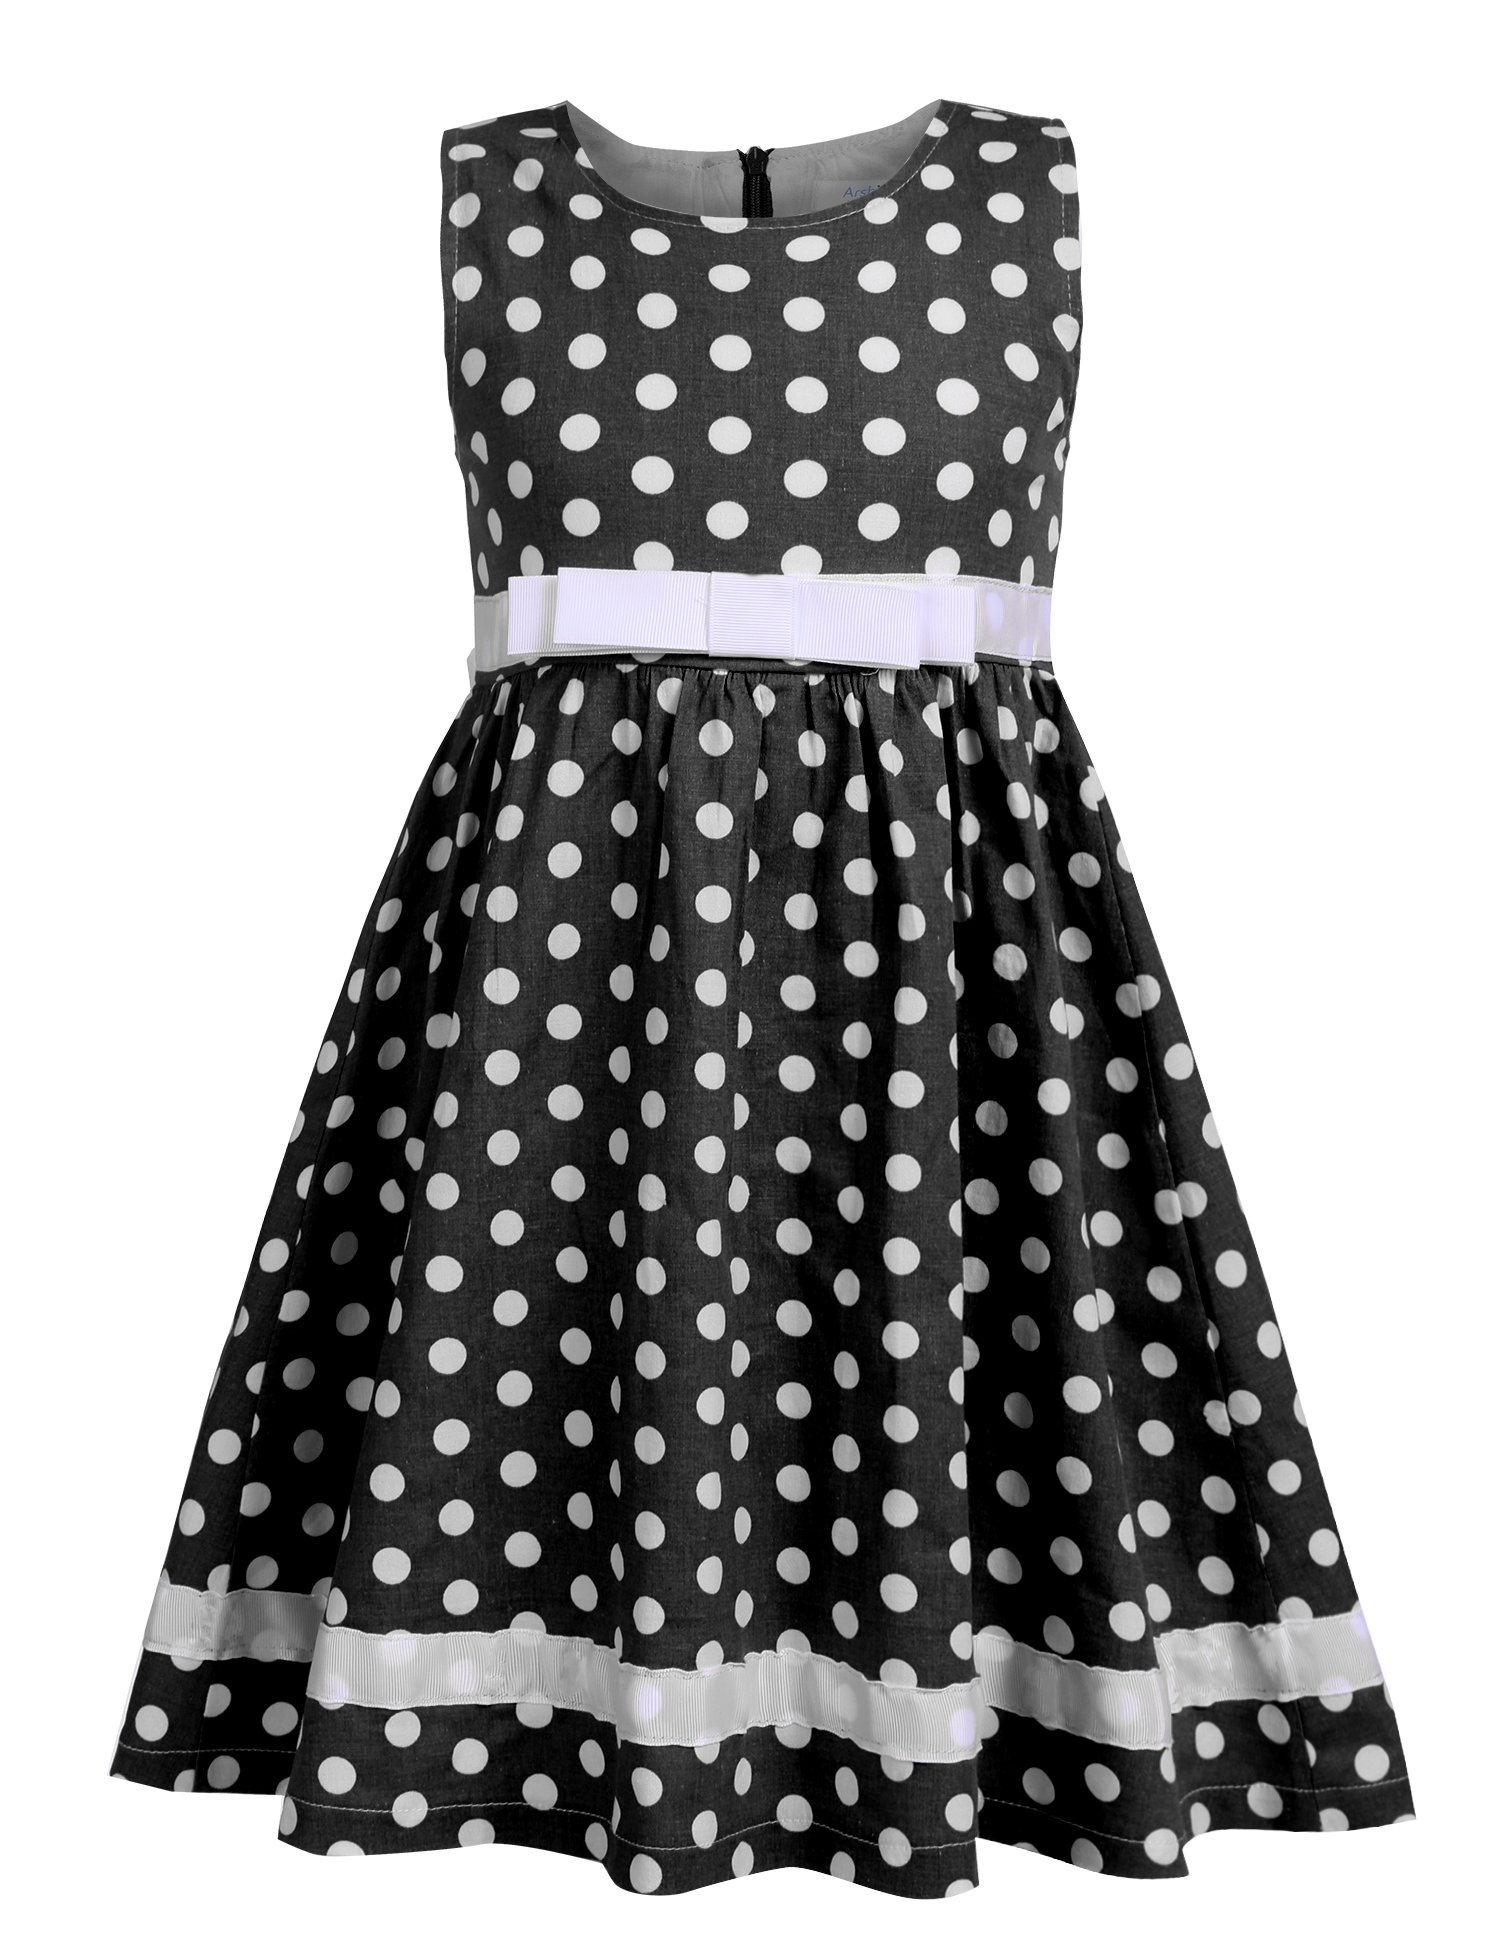 Arshiner Toddlers Little Girls Sleeveless Cute Dots Floral Print Tea Length A-Line Dress with Belt,Black,120(Age for 6-7Years)